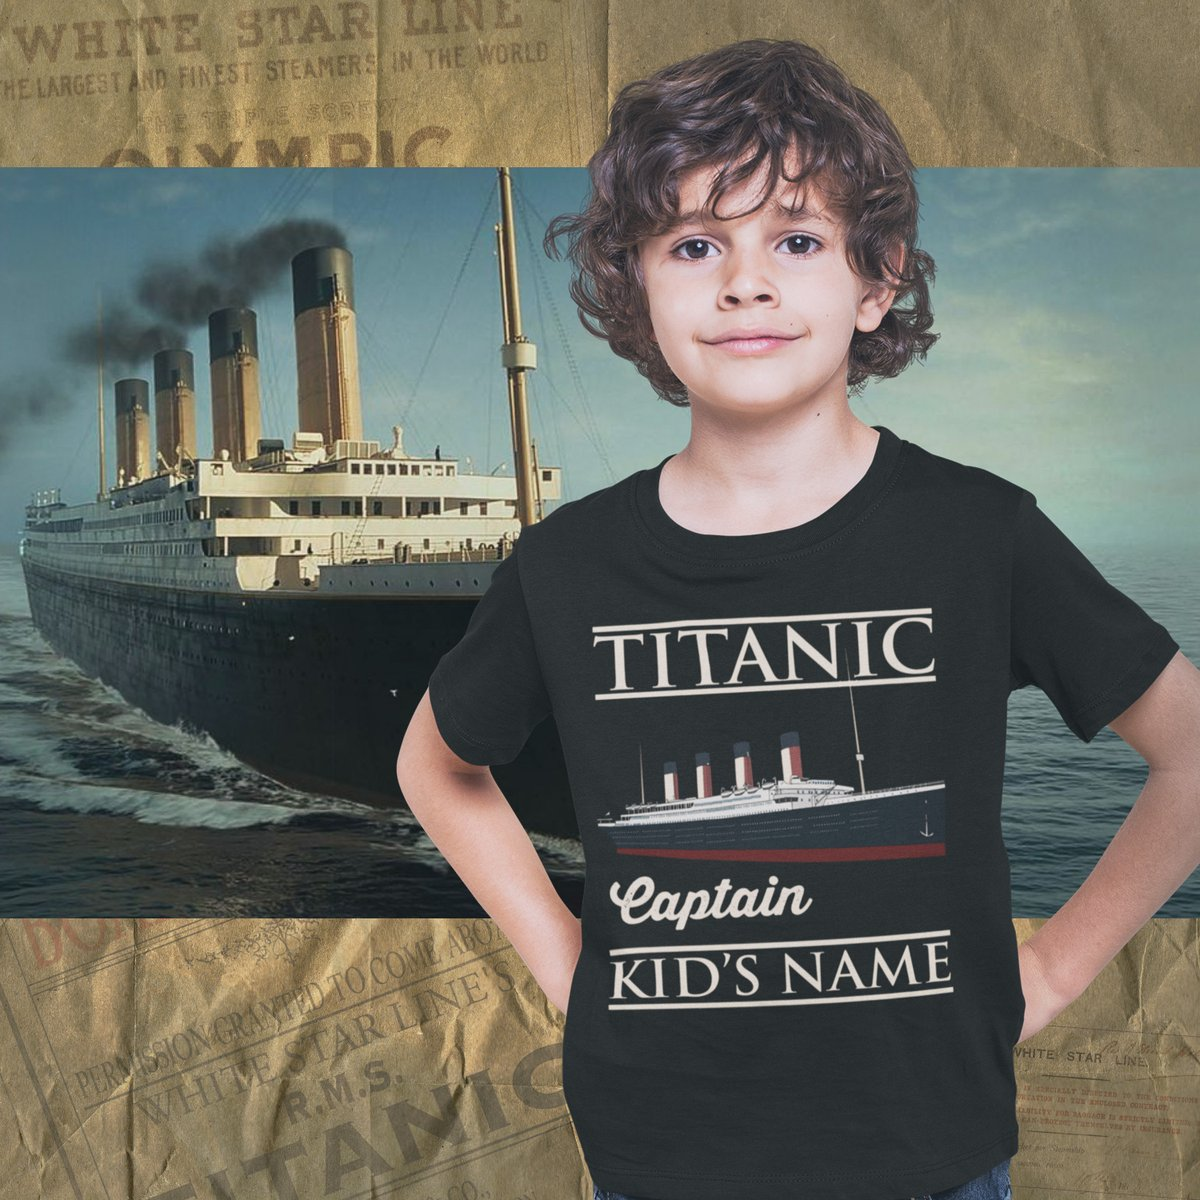 Excited to share the latest addition to my #etsy shop: Captain Titanic custom name shirt, handmade t shirt - personalizer reusable Titanic gift for boy 6 8 years old  #black #blue #streetwear #titaniccustomshirt #titaniccustomname #titanic